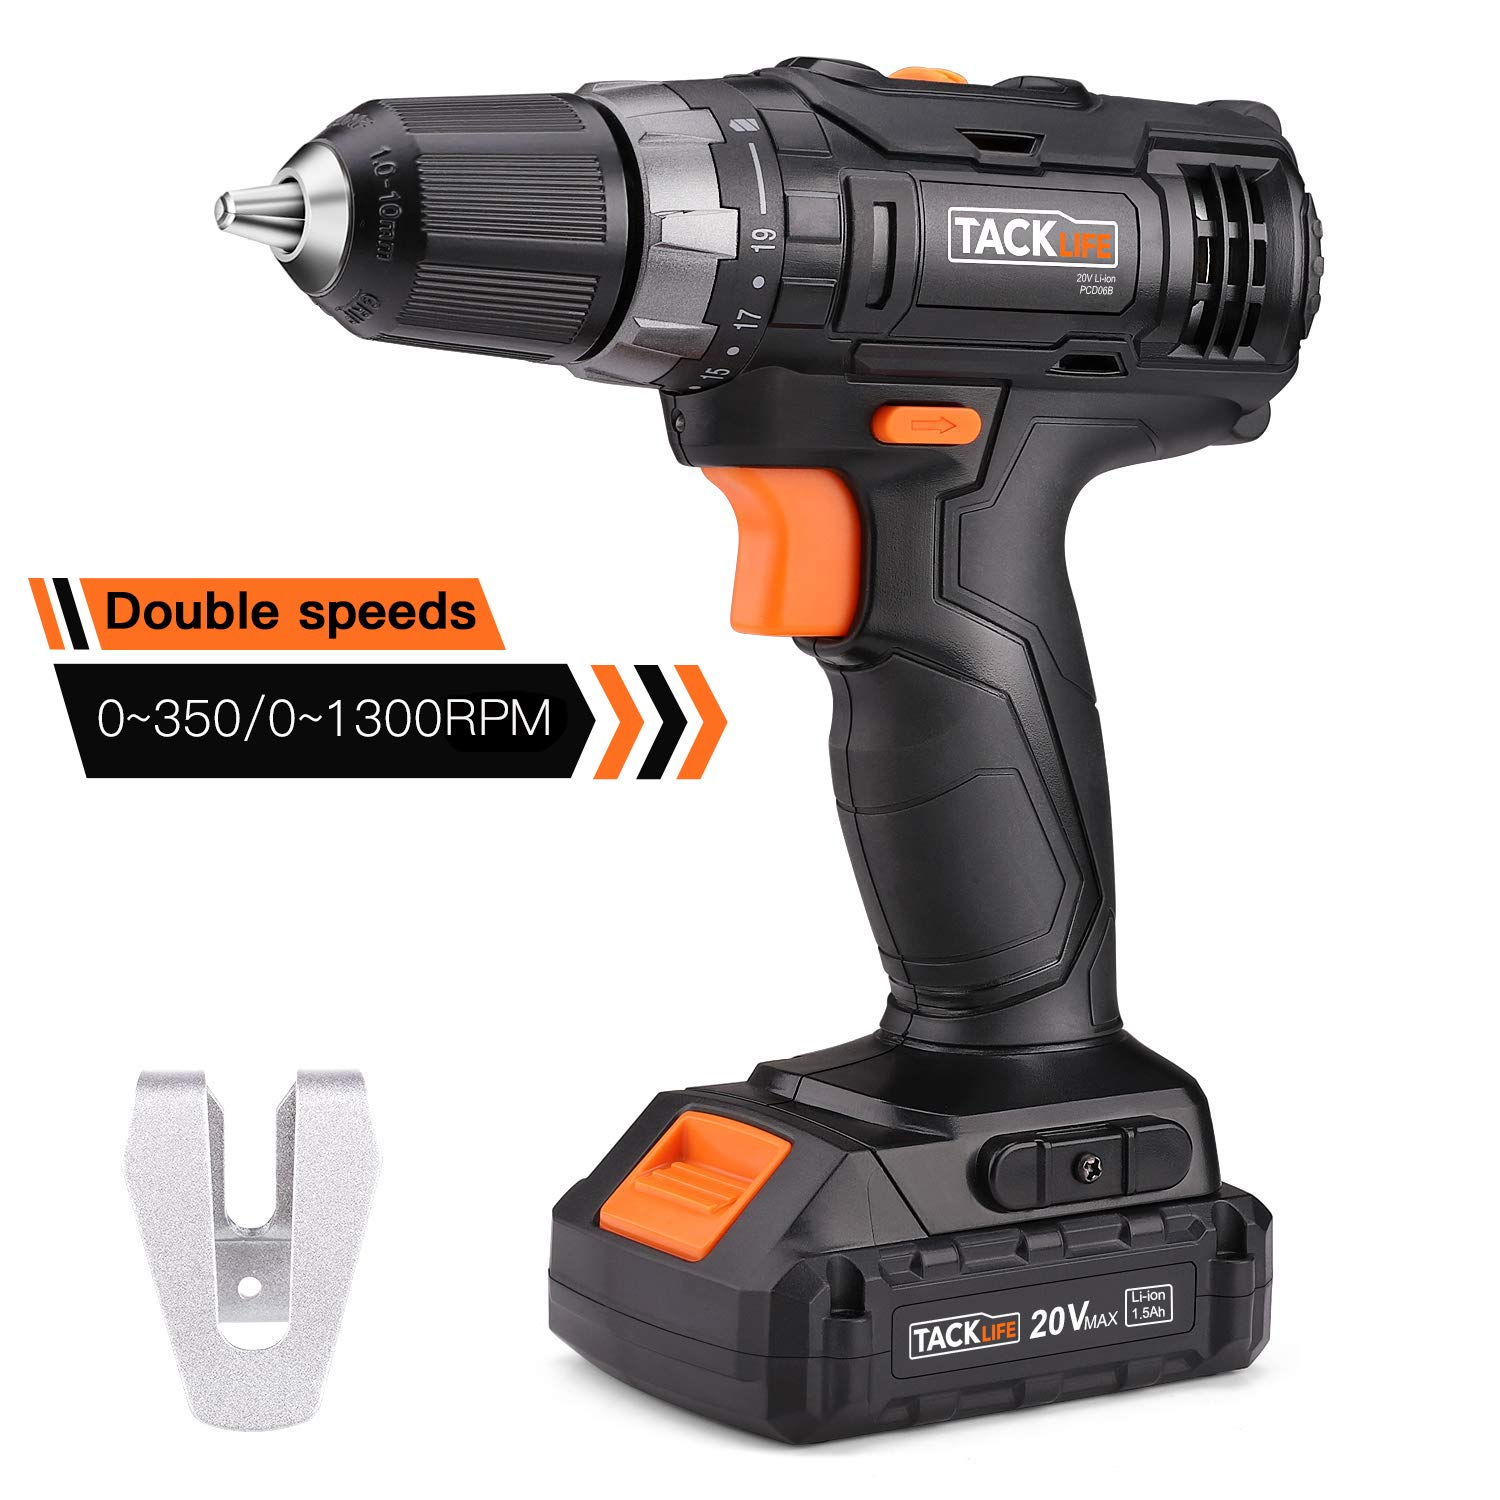 """TACKLIFE PCD06B 20V MAX Lithium-Ion 3/8"""" Cordless Drill Driver, 2-Speed Max Torque 265 in-lbs 19+1 Position with LED, Compact Battery Cell and Charger Included"""